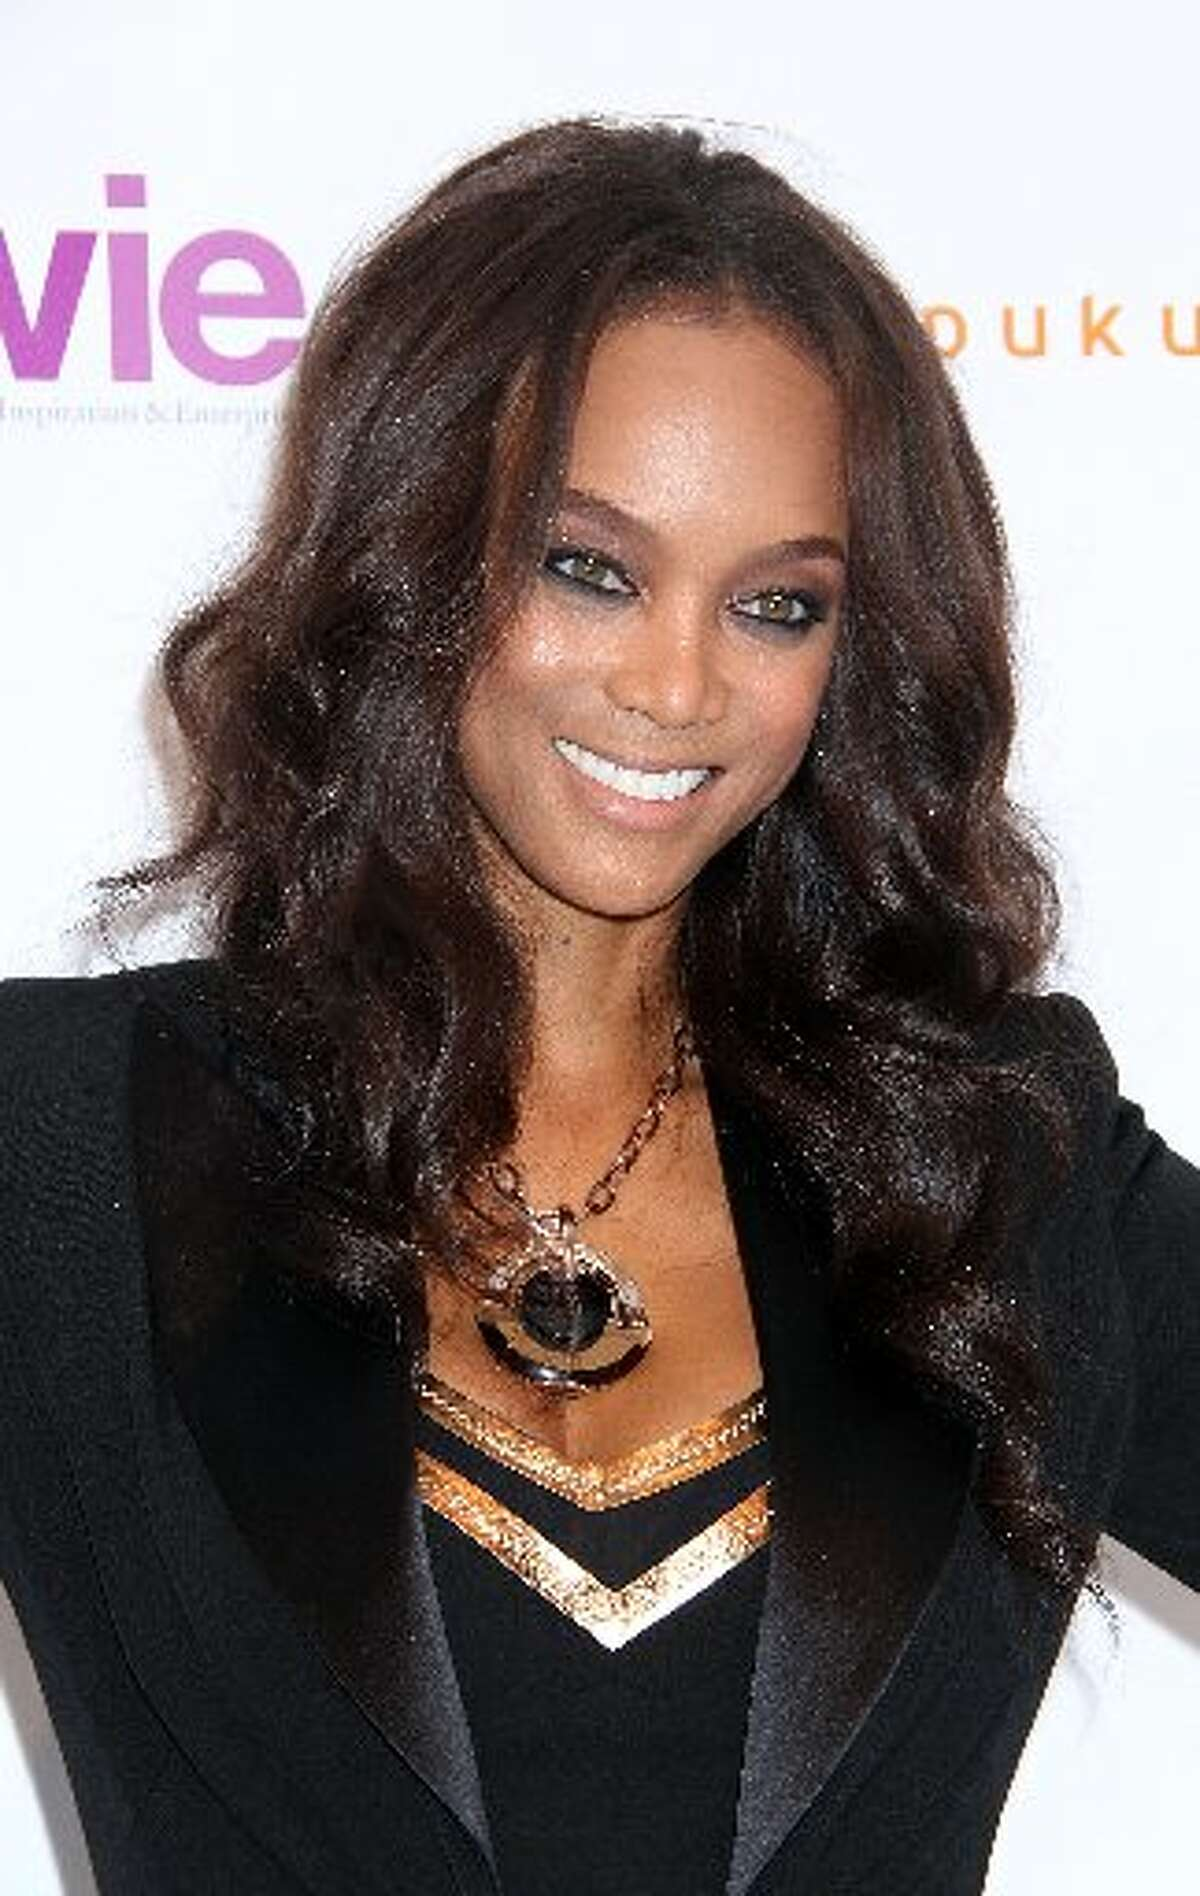 Tyra Banks turns 40 on December 4, so let's take a look at which other celebrities hit the big four-oh in 2013.